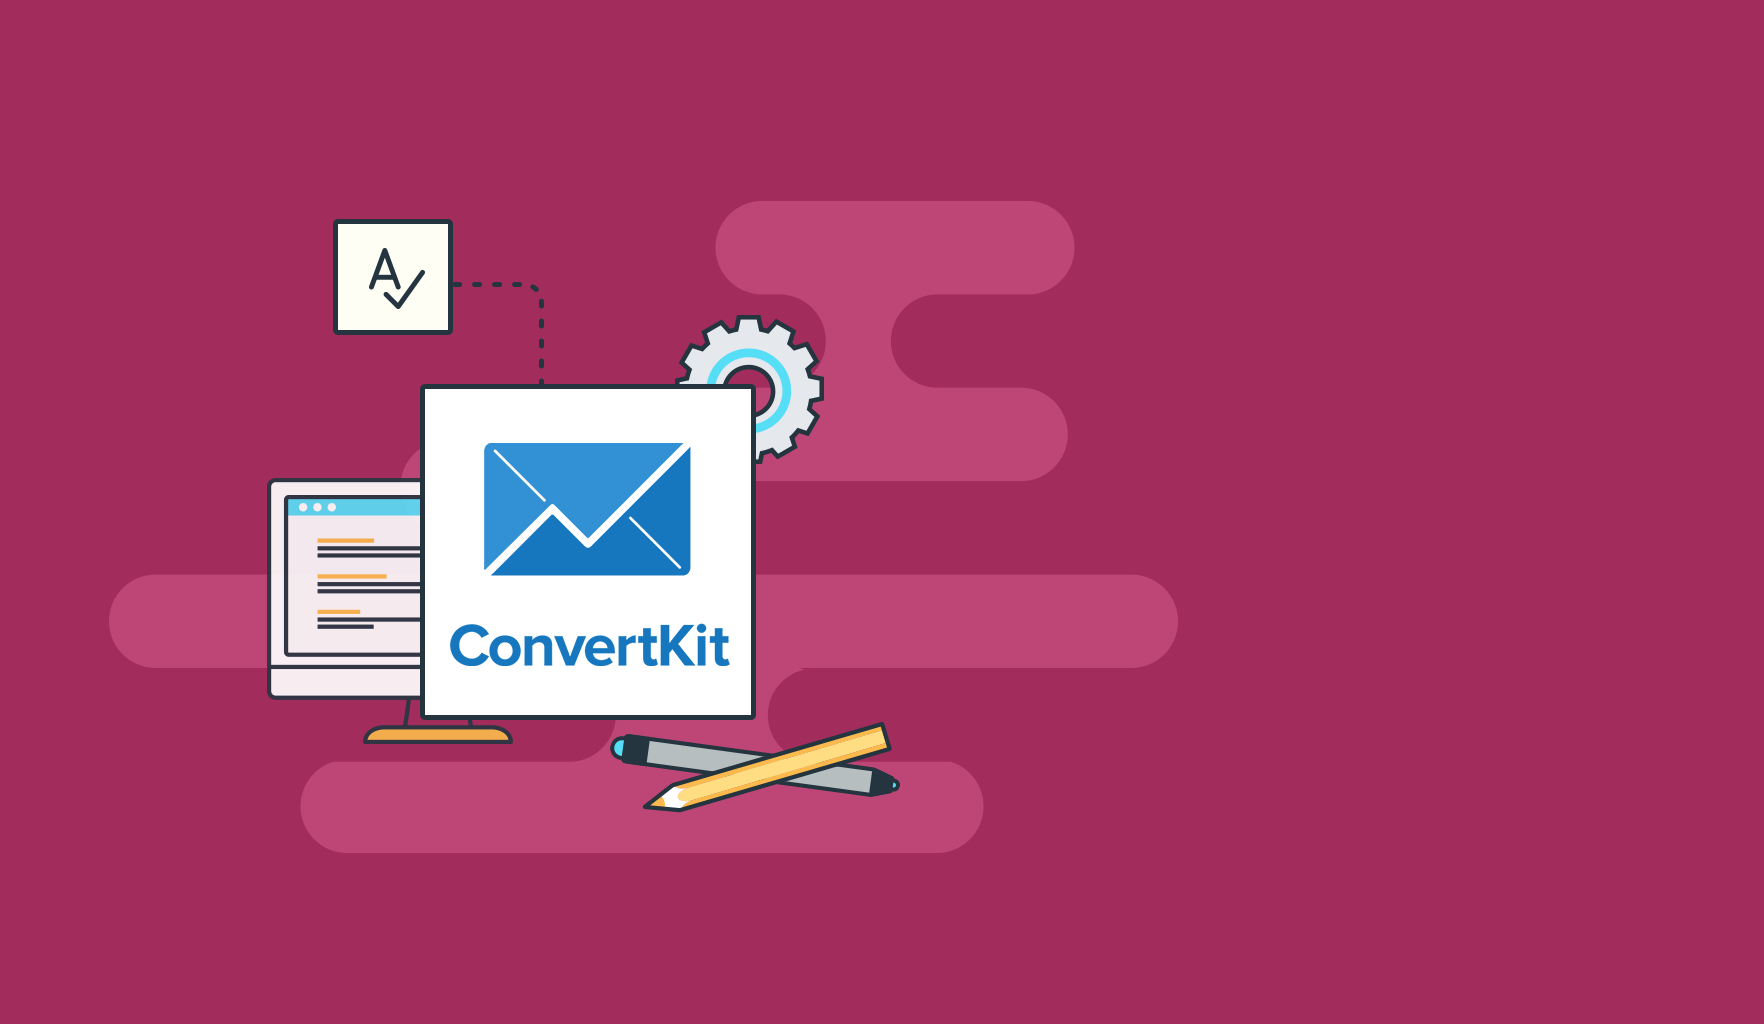 Online Coupon Printable 30 Off Convertkit 2020